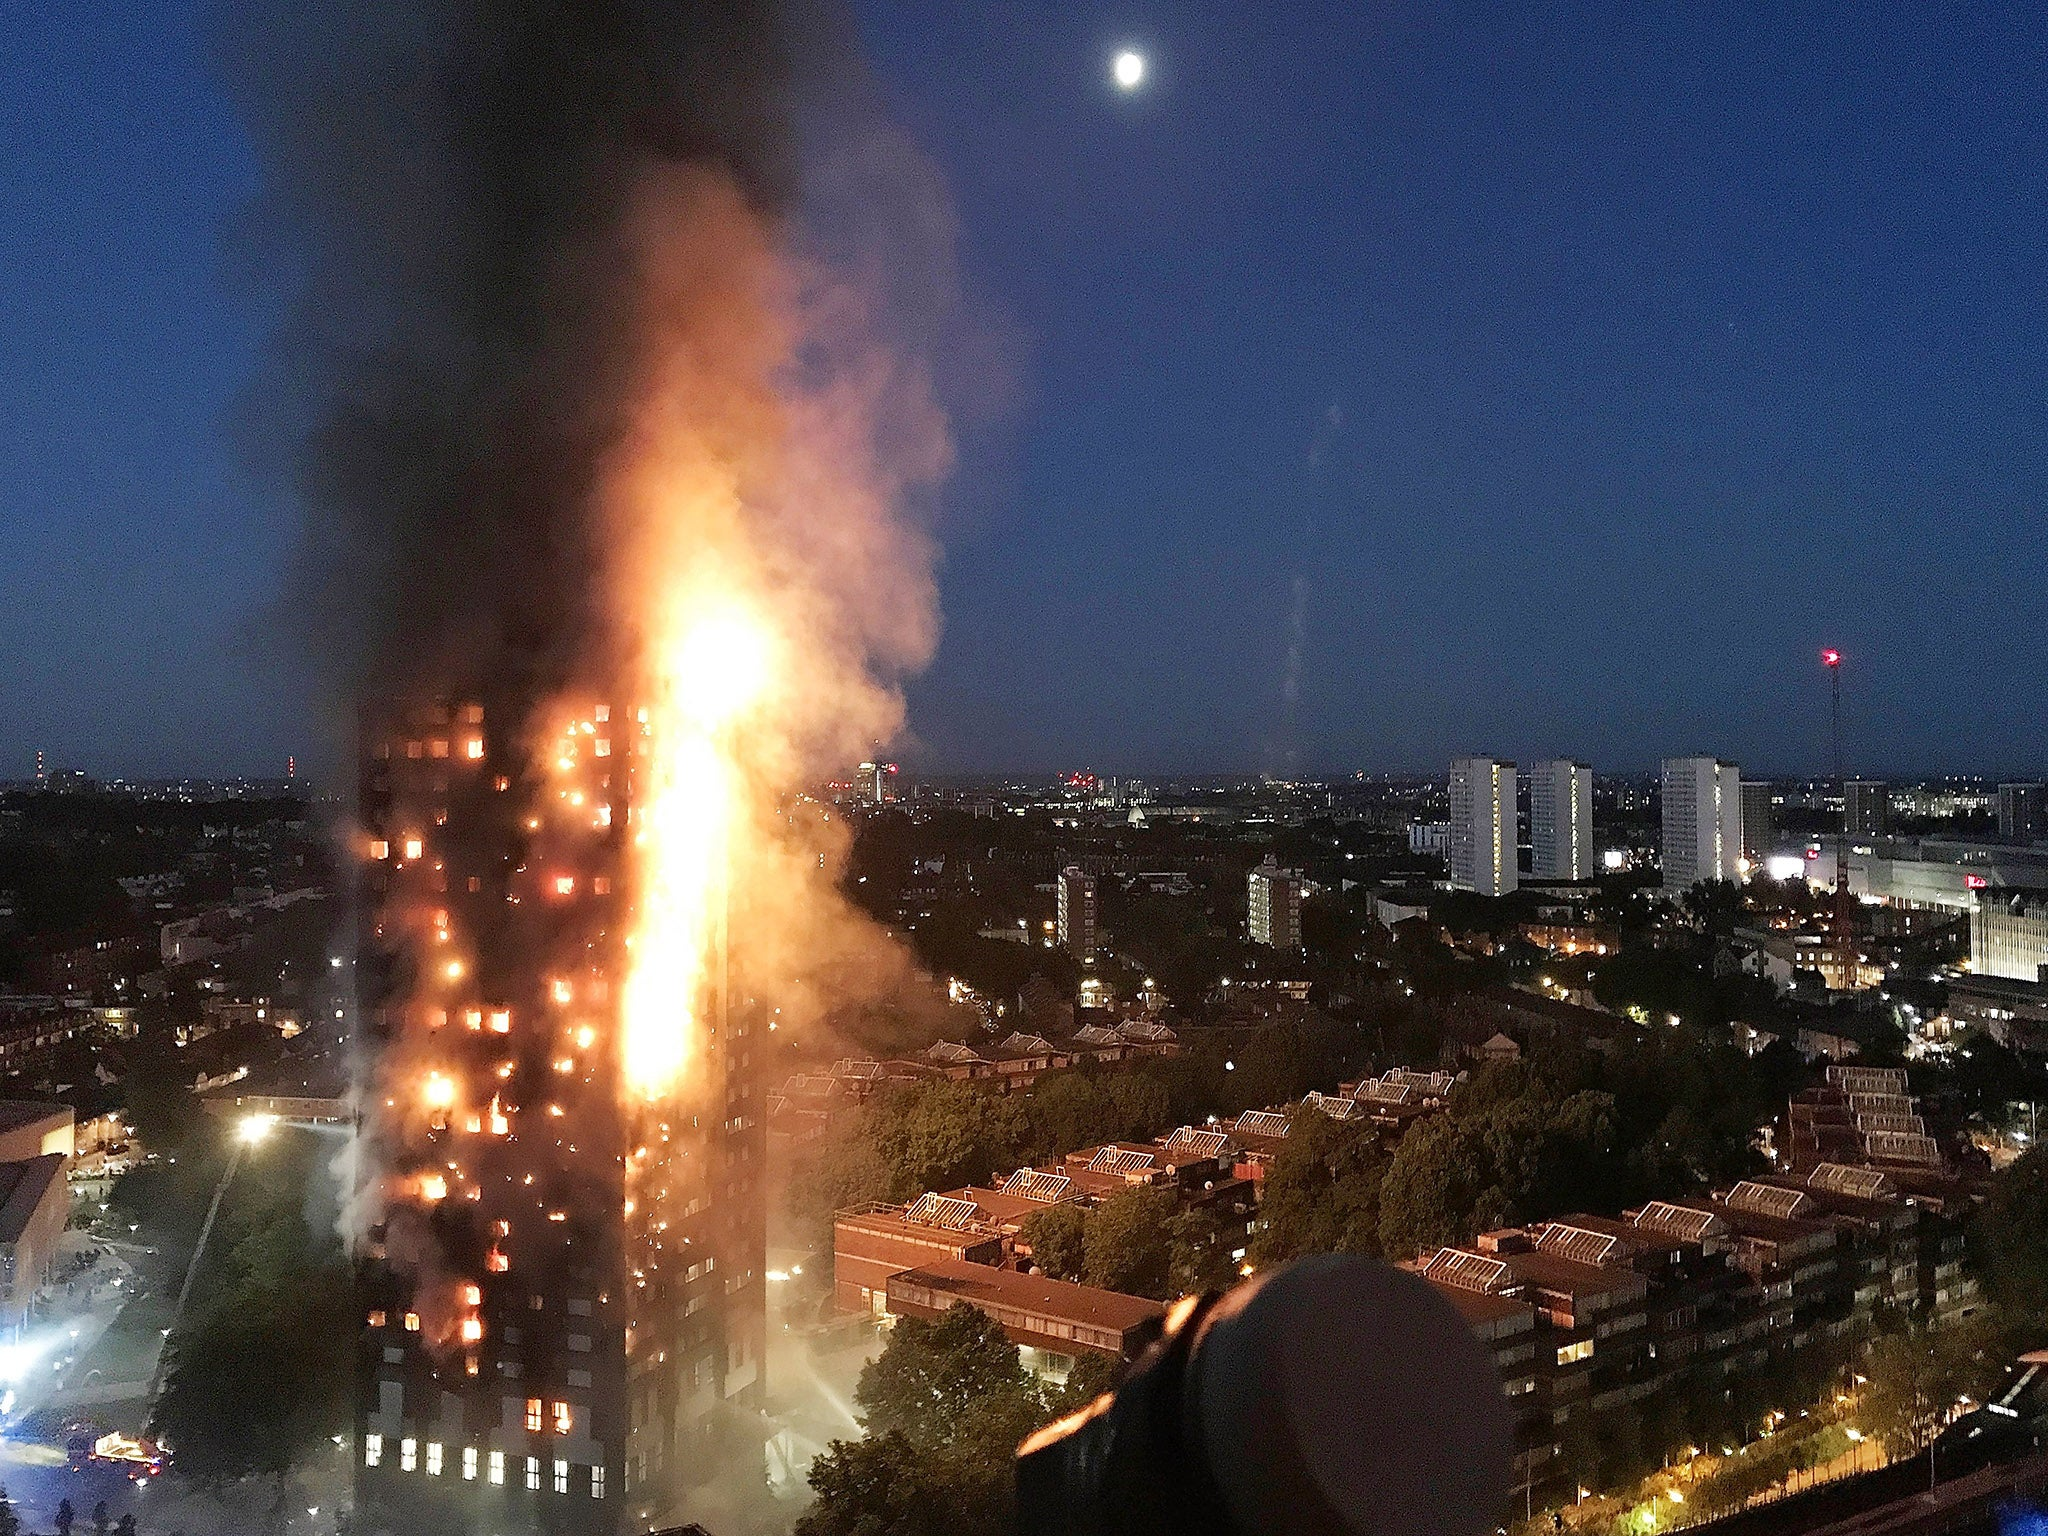 Grenfell Tower firefighters were sent to tackle blaze 'without correct equipment'